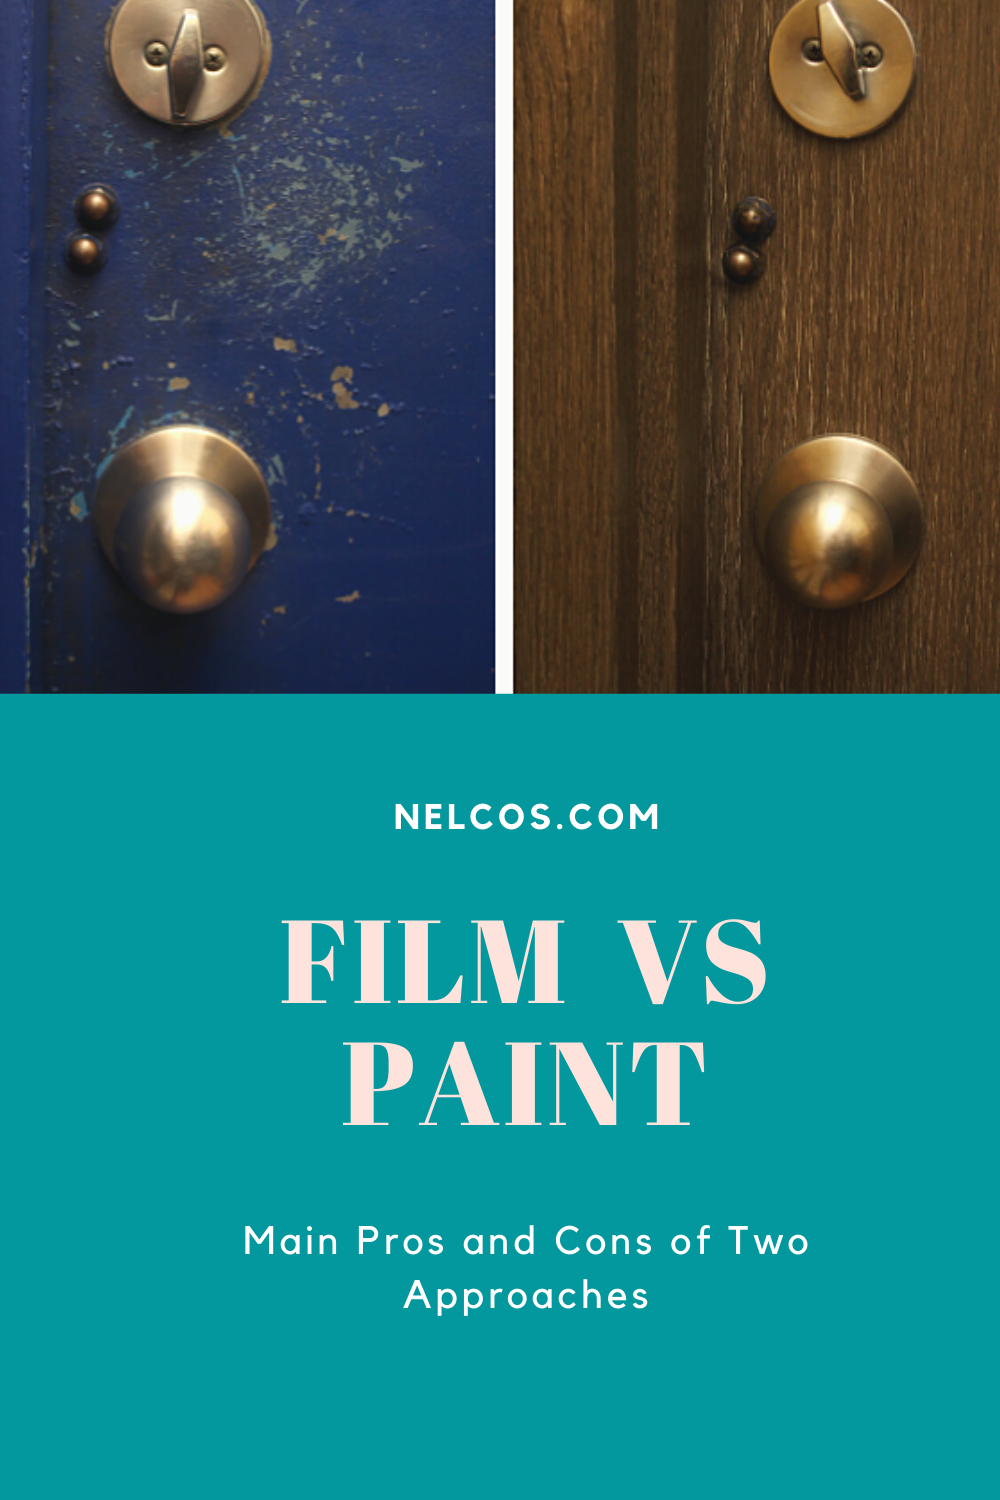 Traditional Paint vs Architectural Film. Pros and Cons in